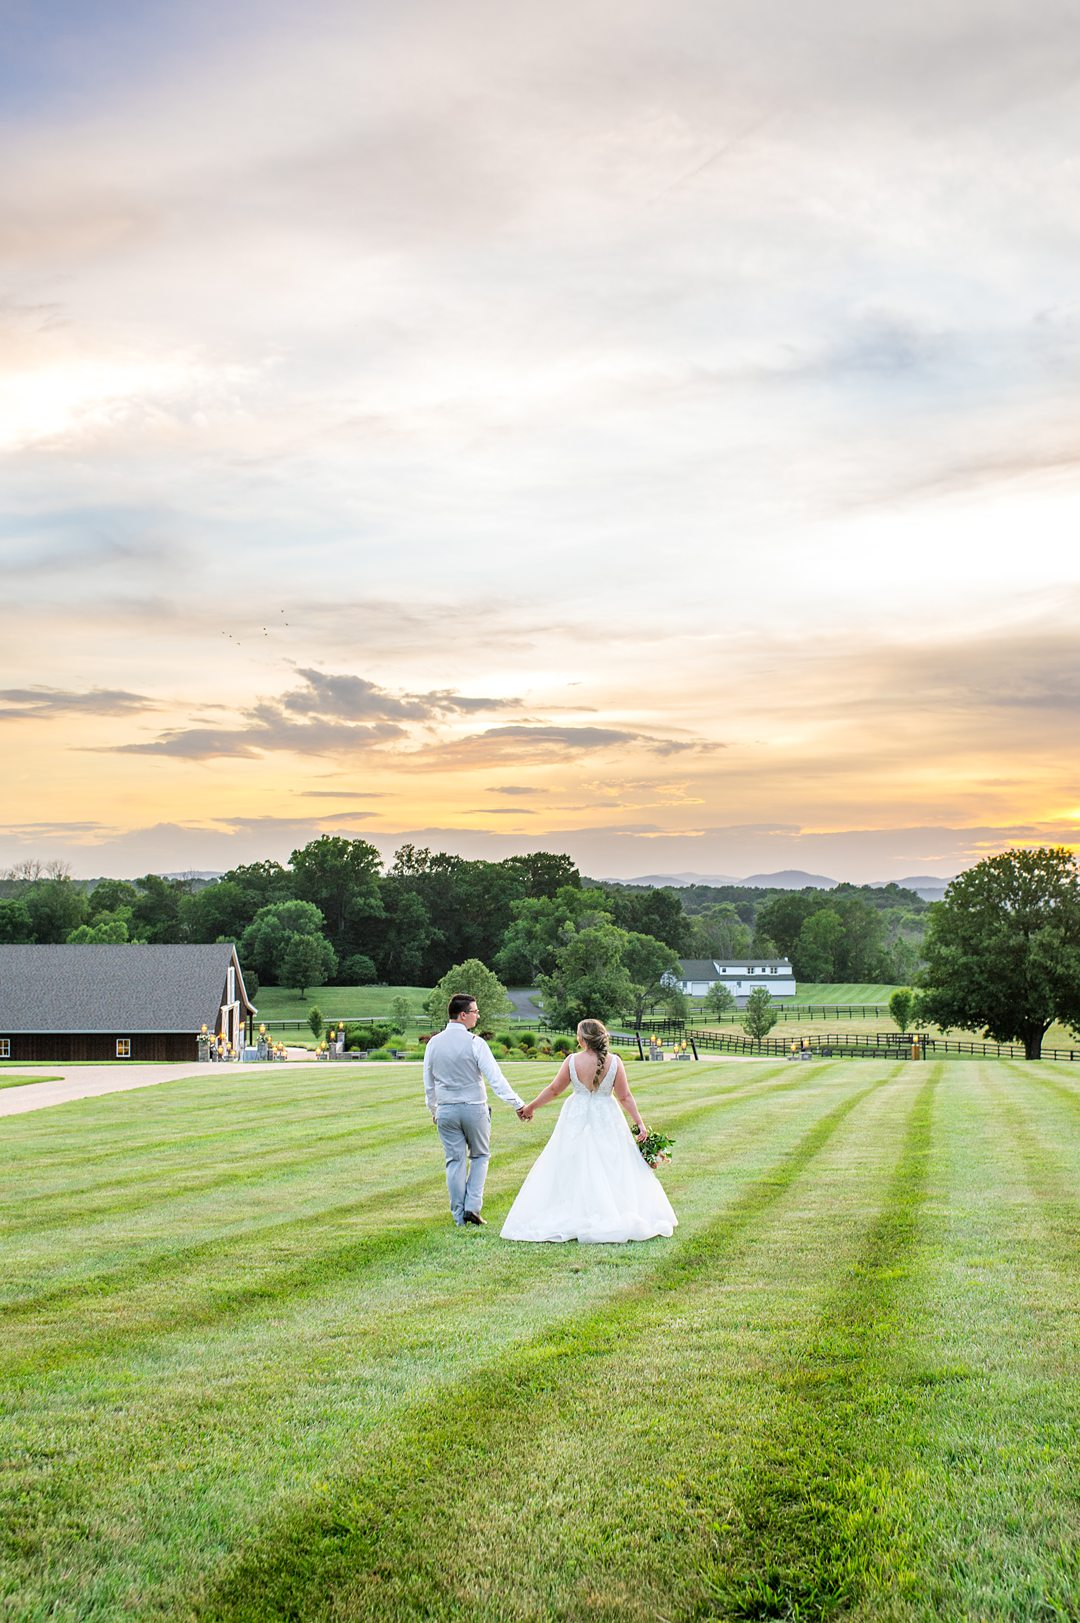 Sunset photo at the Lodge at Mount Ida farm with the bride and groom by Mikkel Paige Photography. #charlottesvillewedding #mikkelpaige #sunsetphotos #brideandgroom